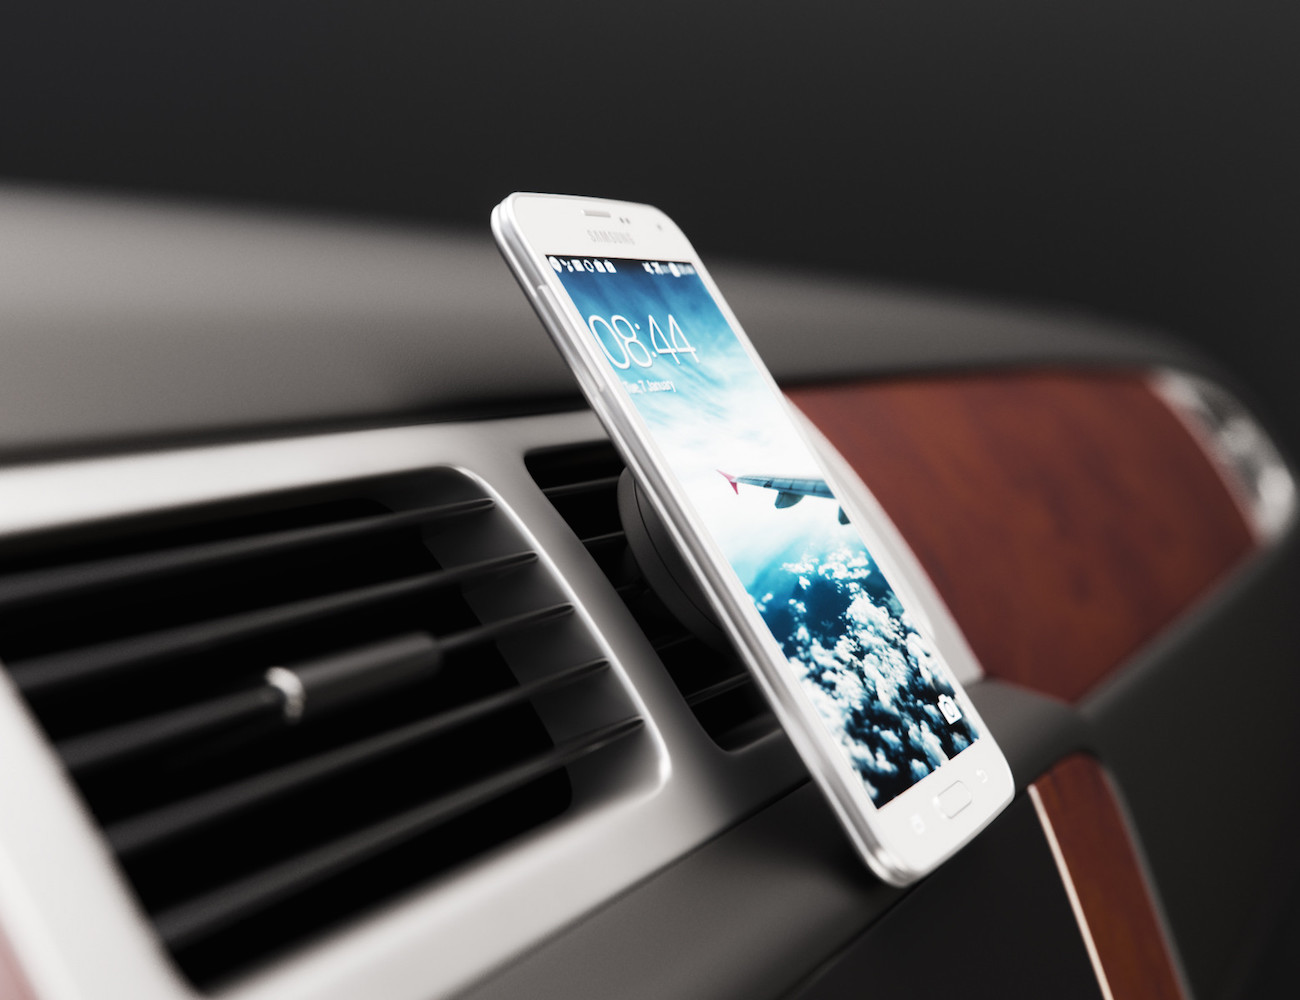 Magnetic+Air+Vent+Phone+Mount+%26amp%3B+Smartphone+Stand